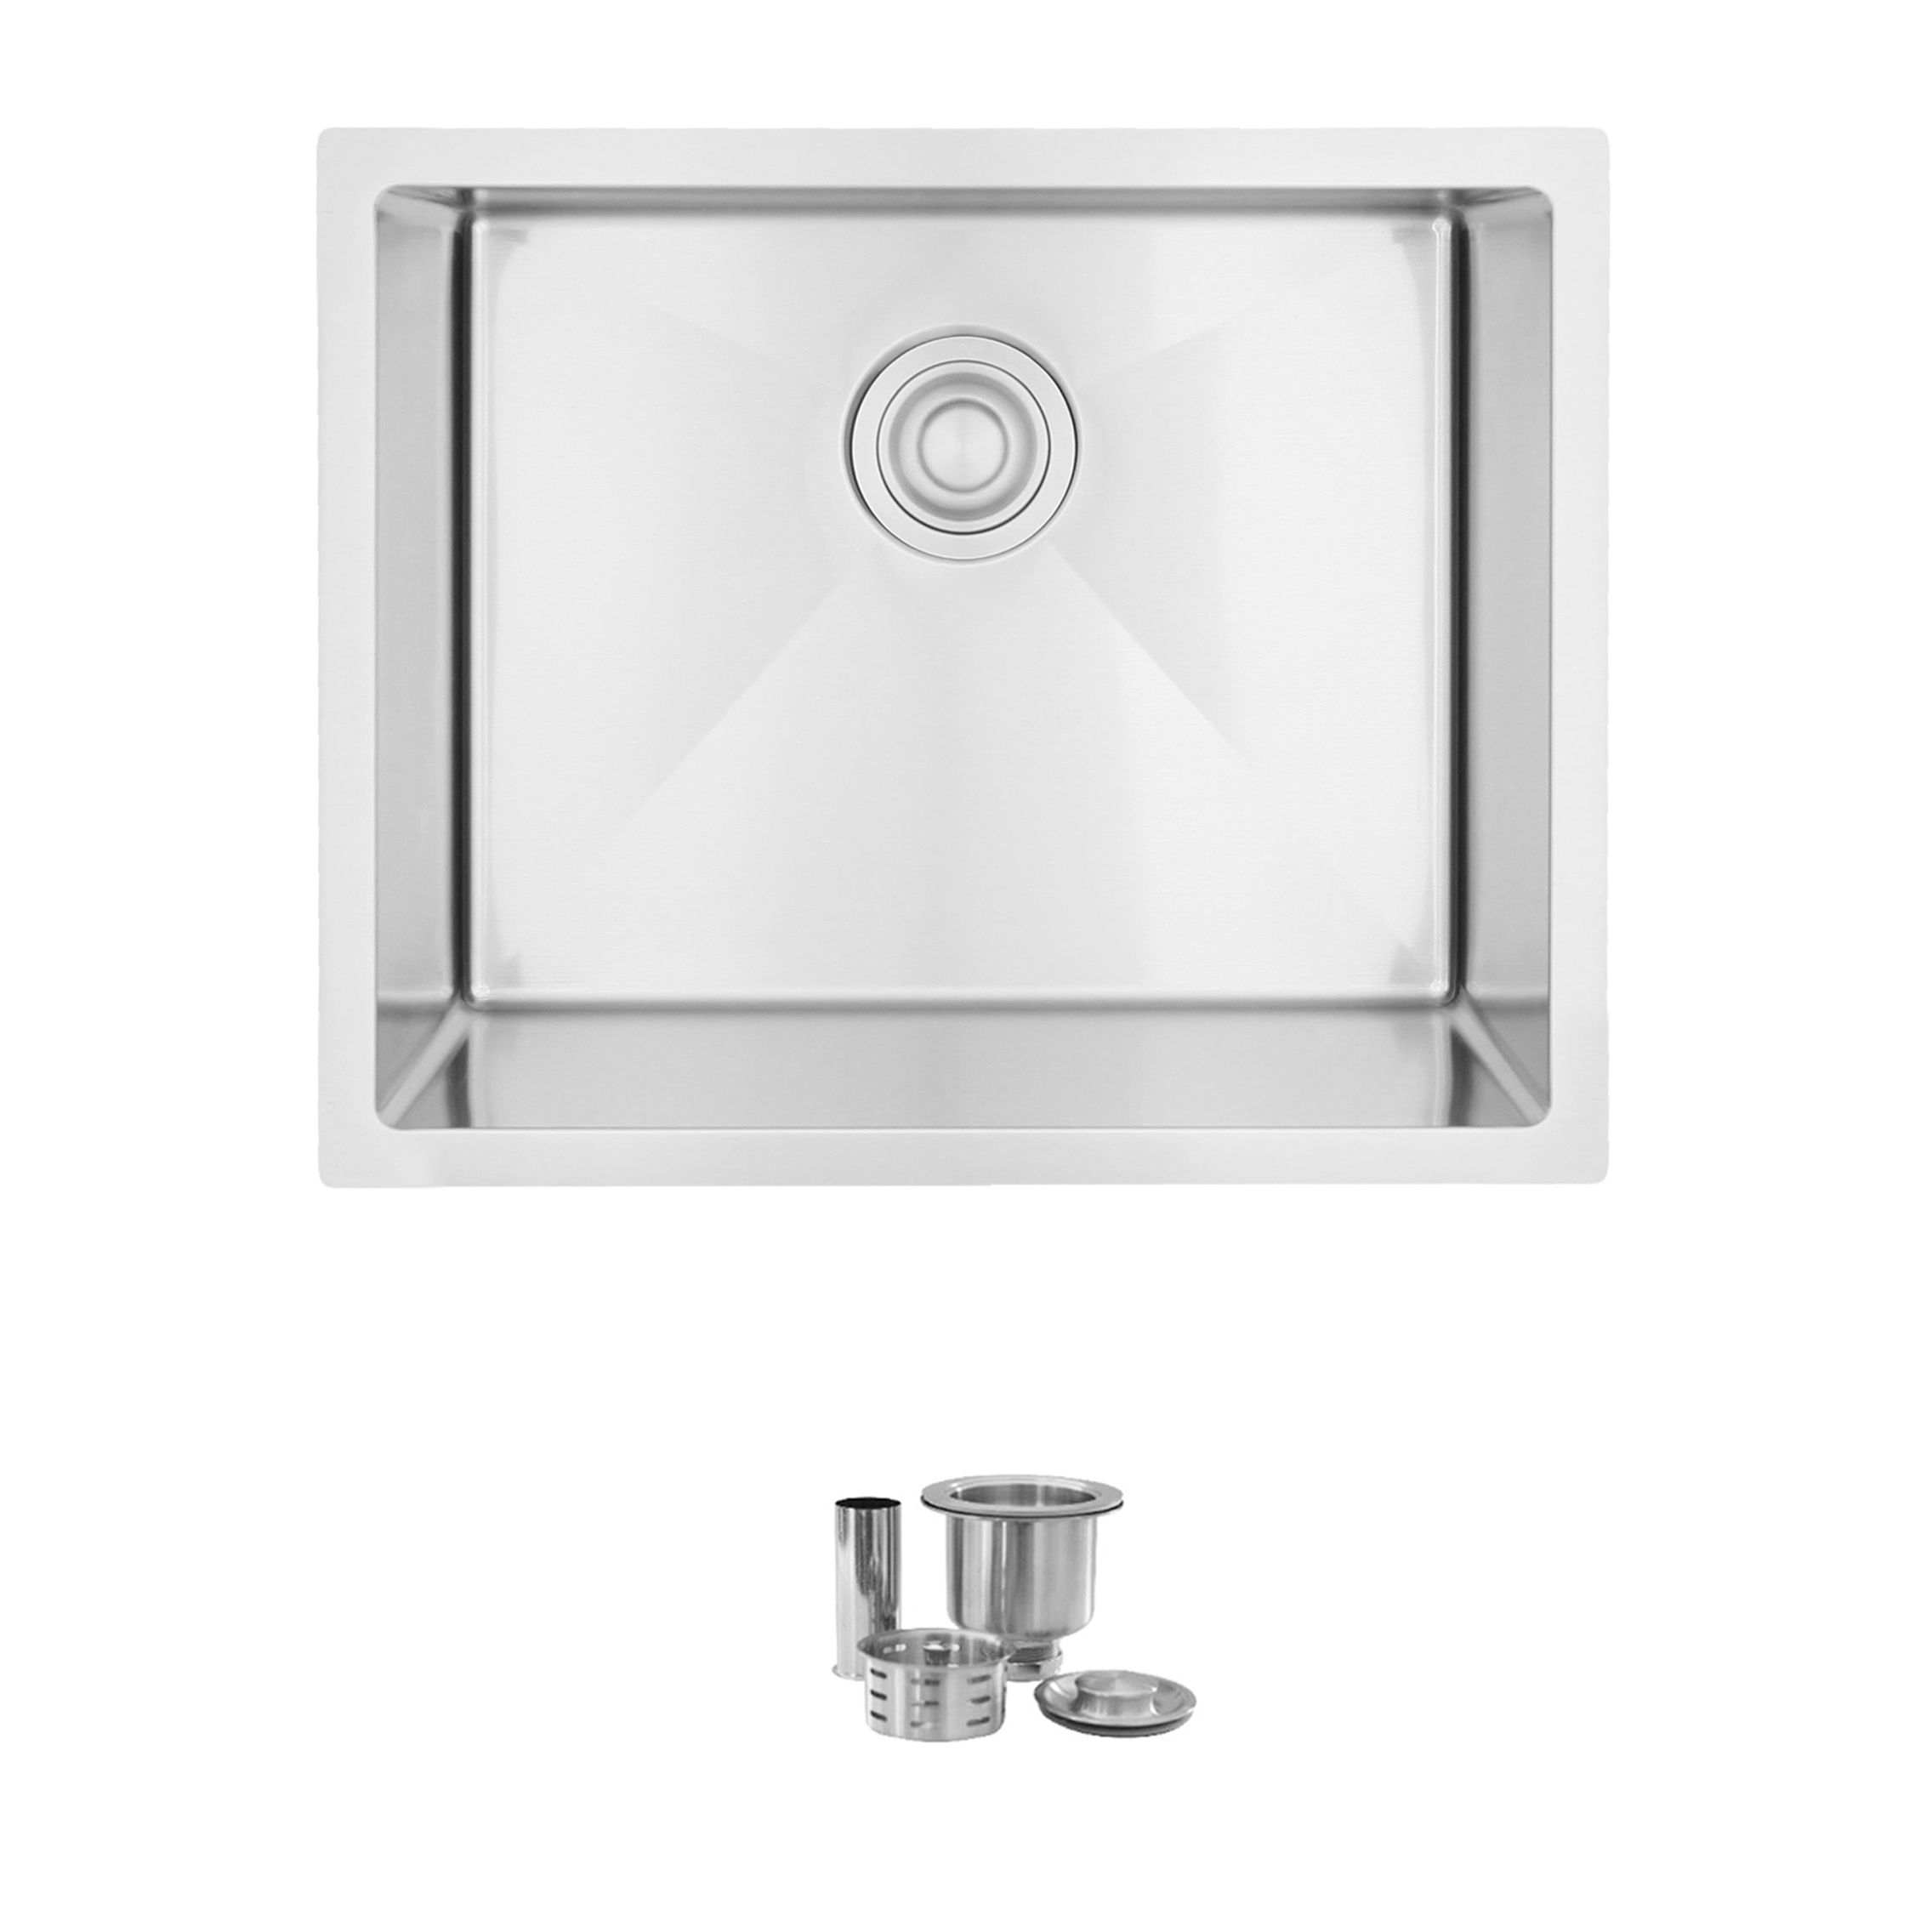 stylish 22 x 12 inch single bowl undermount and drop in stainless steel laundry sink